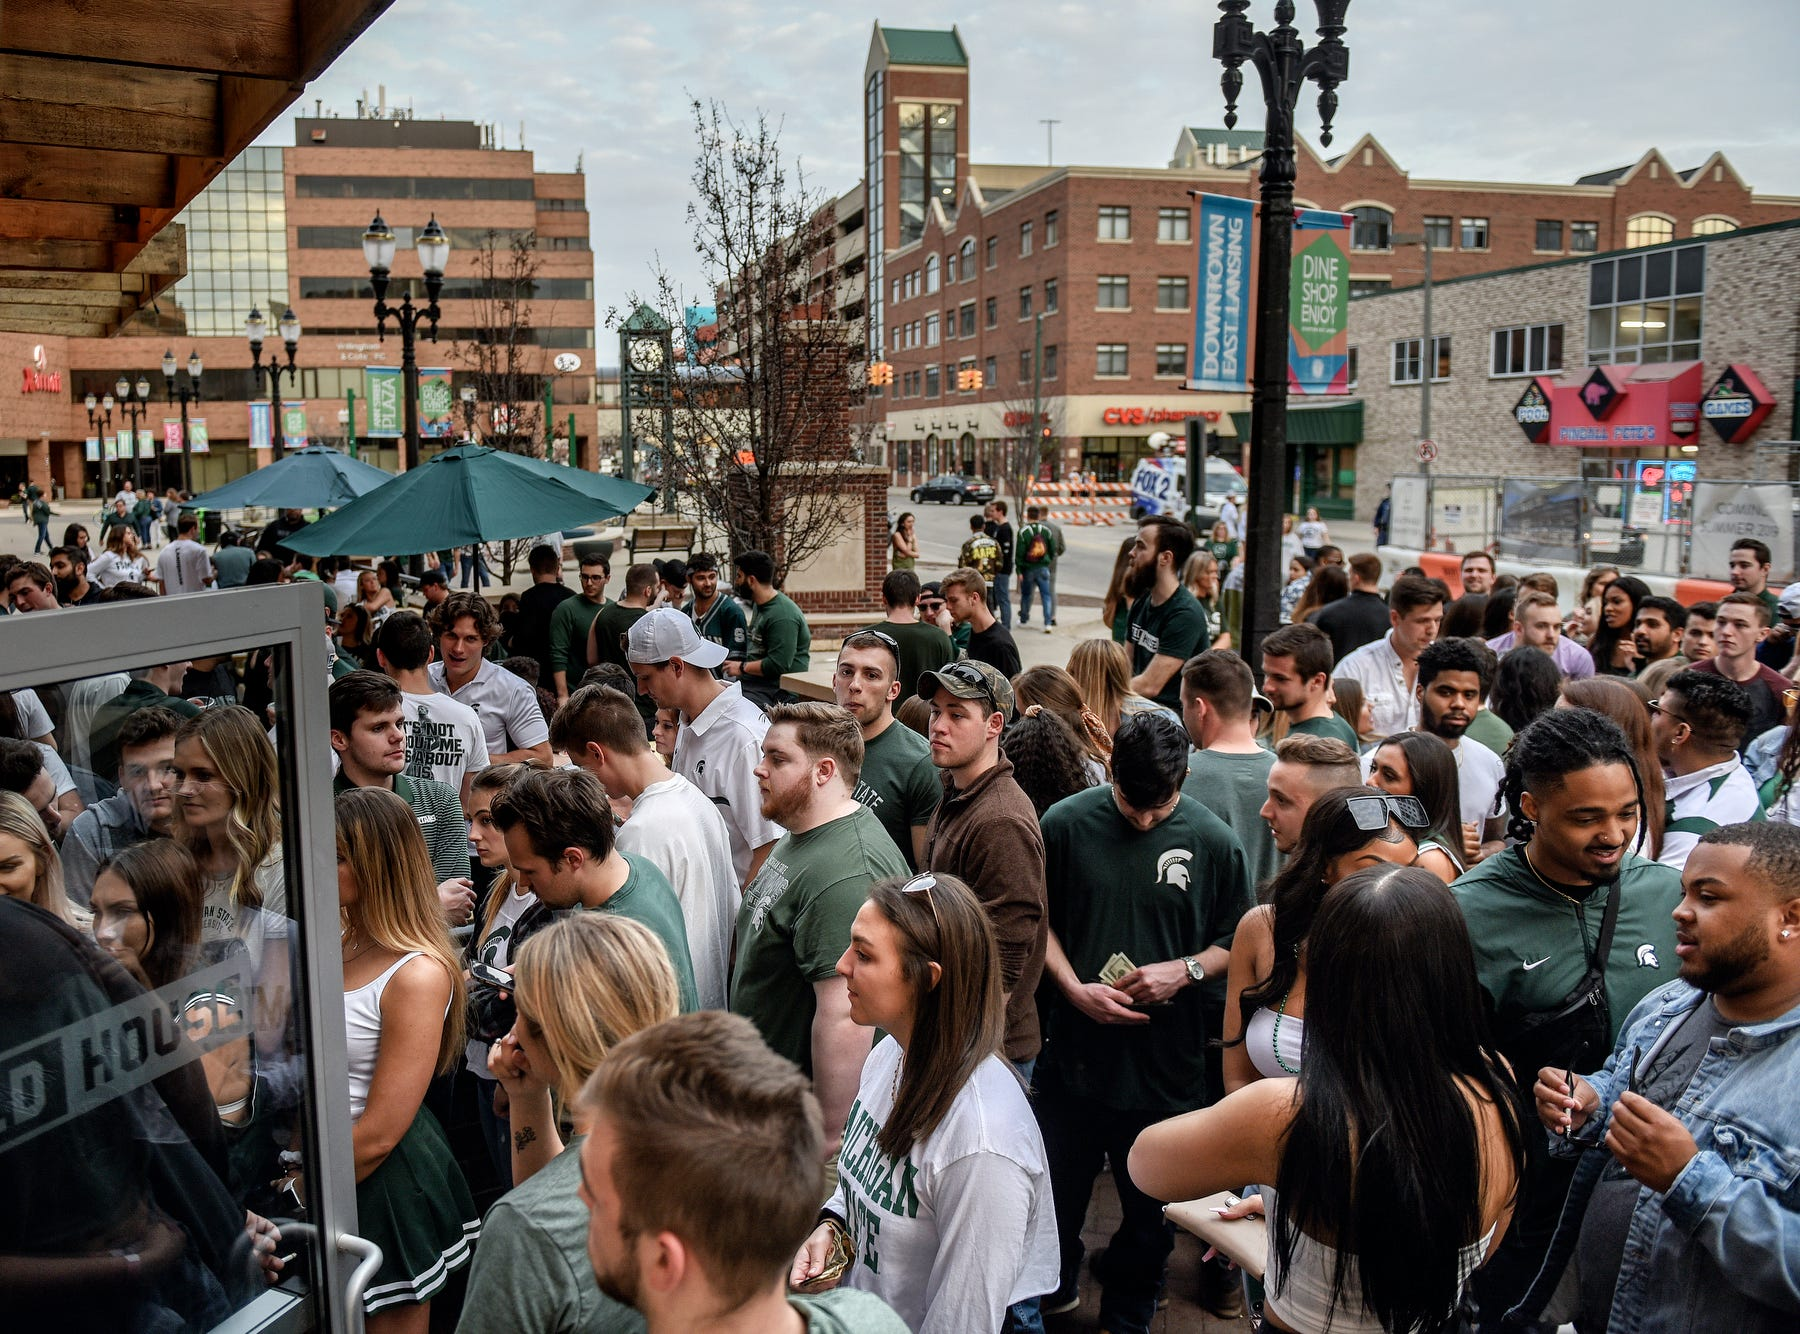 Patrons wait to get inside the FieldHouse before the Michigan State Spartans' Final Four game against Texas Tech on Saturday, April 6, 2019, in East Lansing.